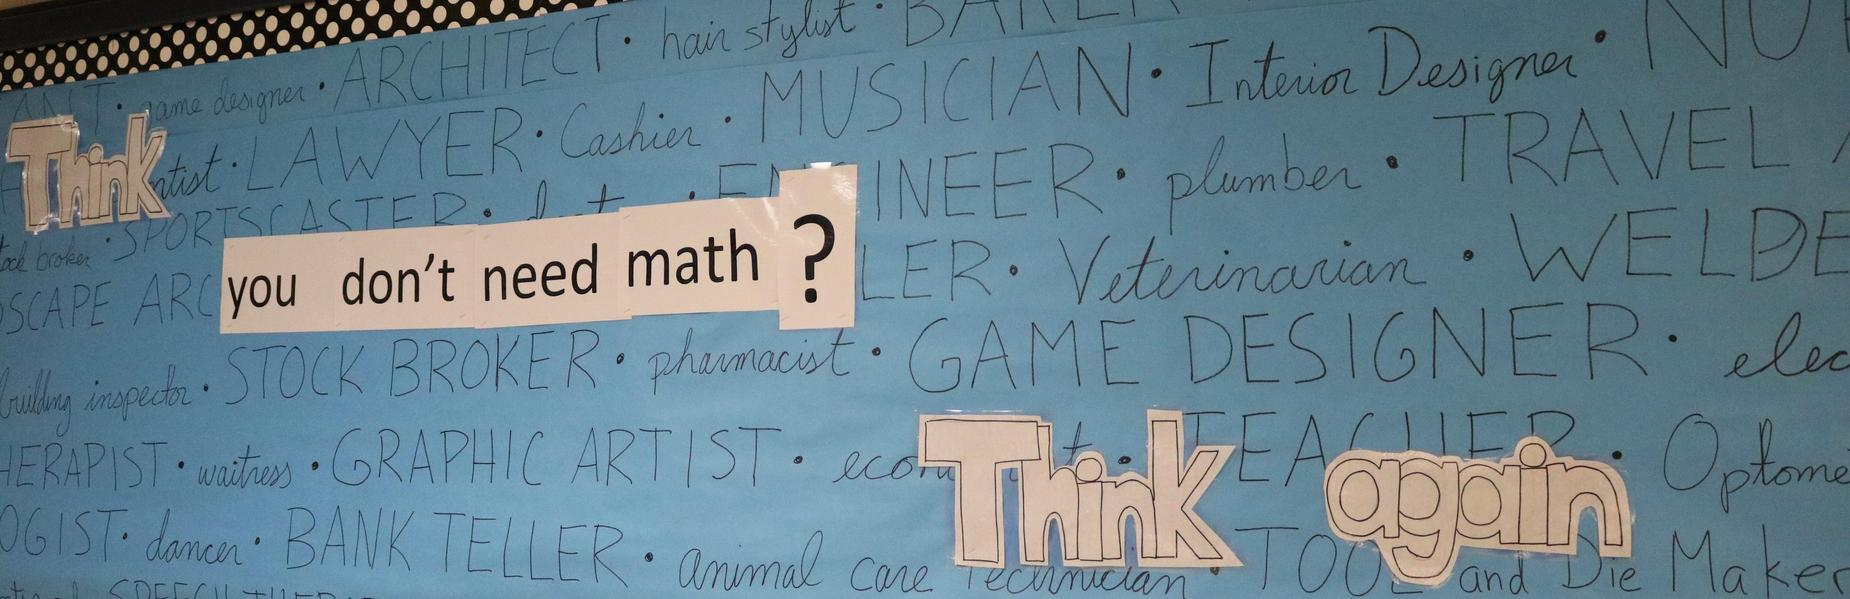 Great bulletin board at Roosevelt lntermediate School reminding students that math is used in all walks of life.